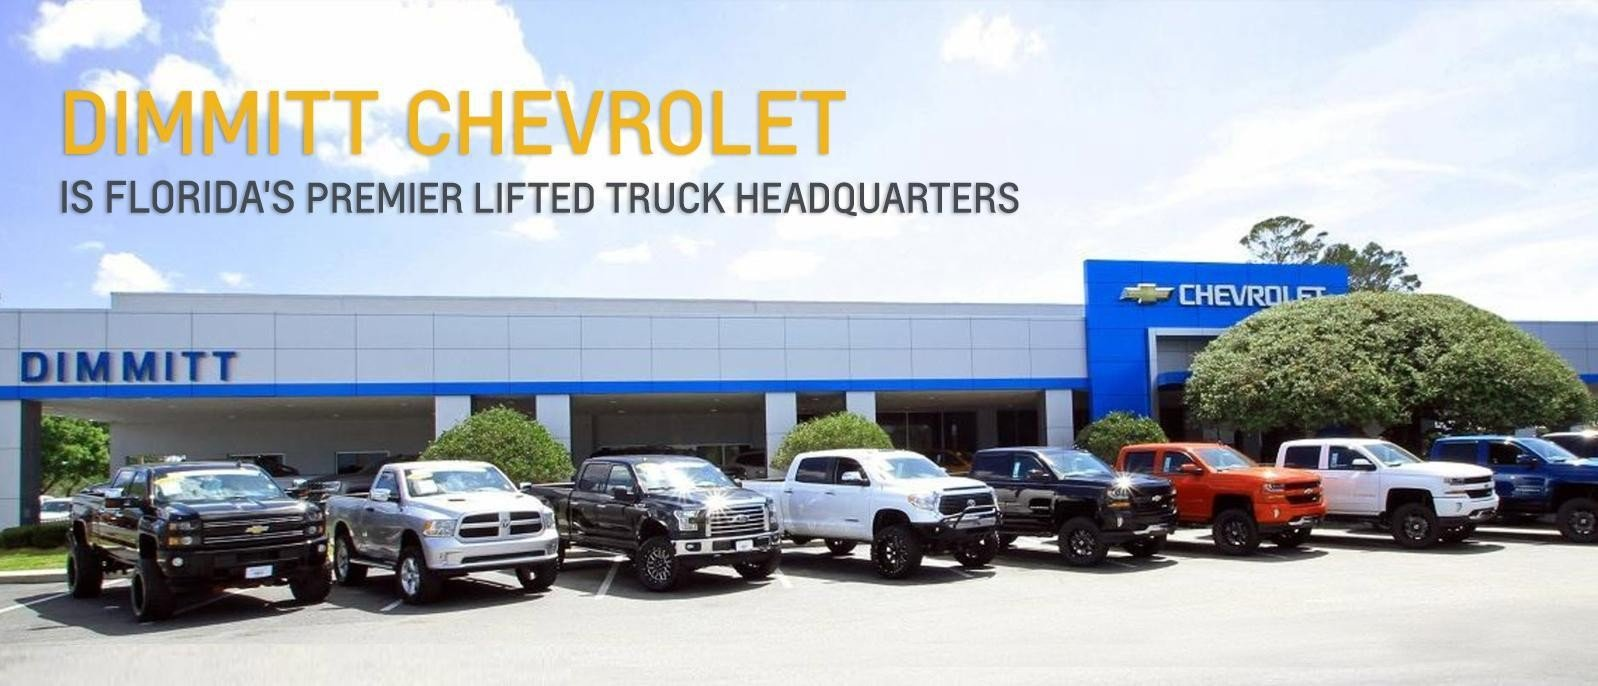 Lifted trucks for sale at Dimmitt Chevrolet in Clearwater, FL - Tampa Bay.